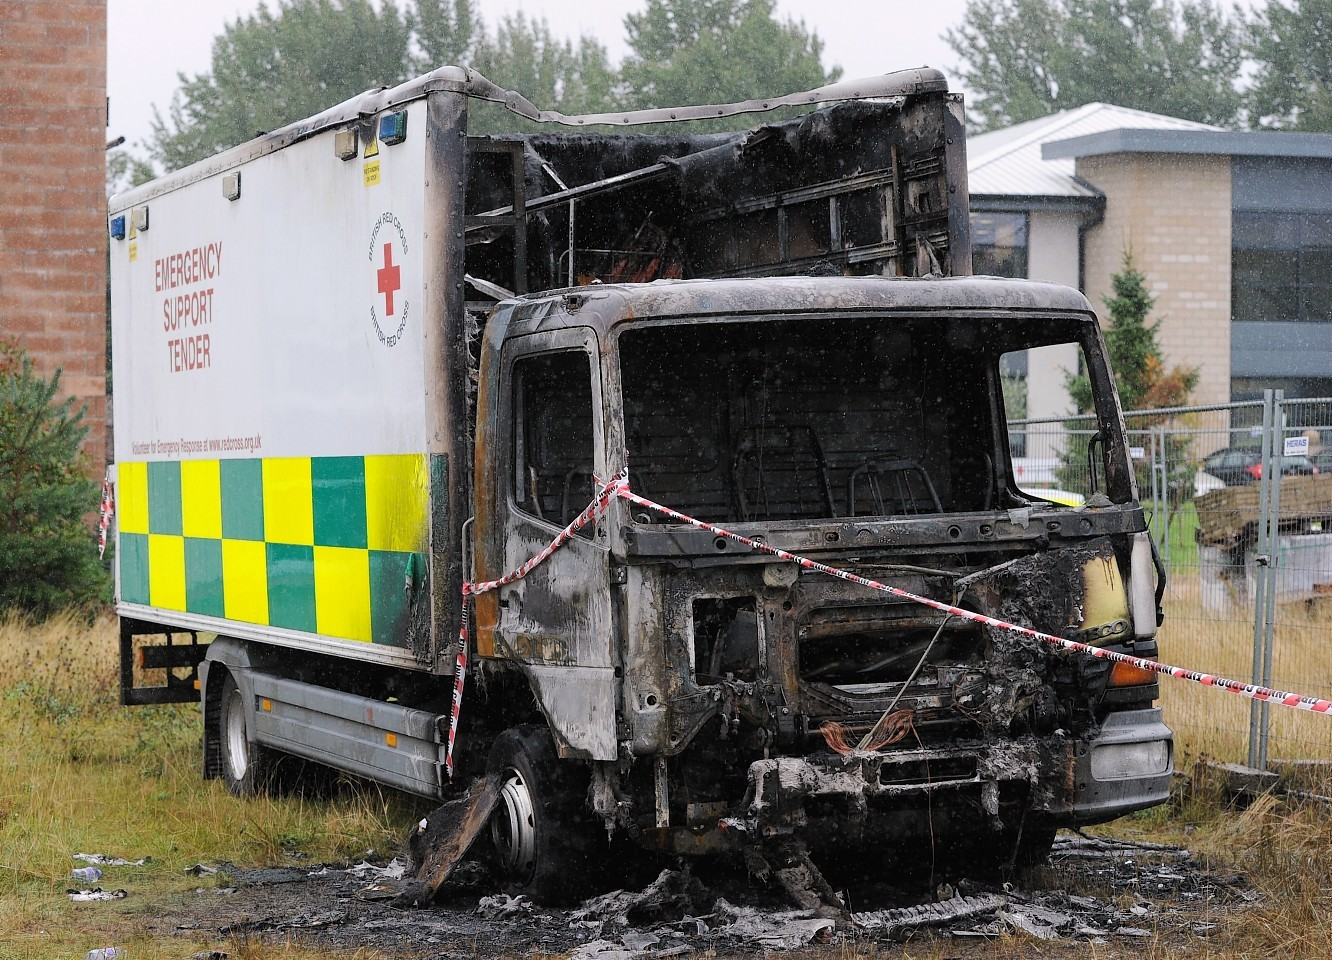 The Red Cross lorry was found in Cradlehall, Inverness